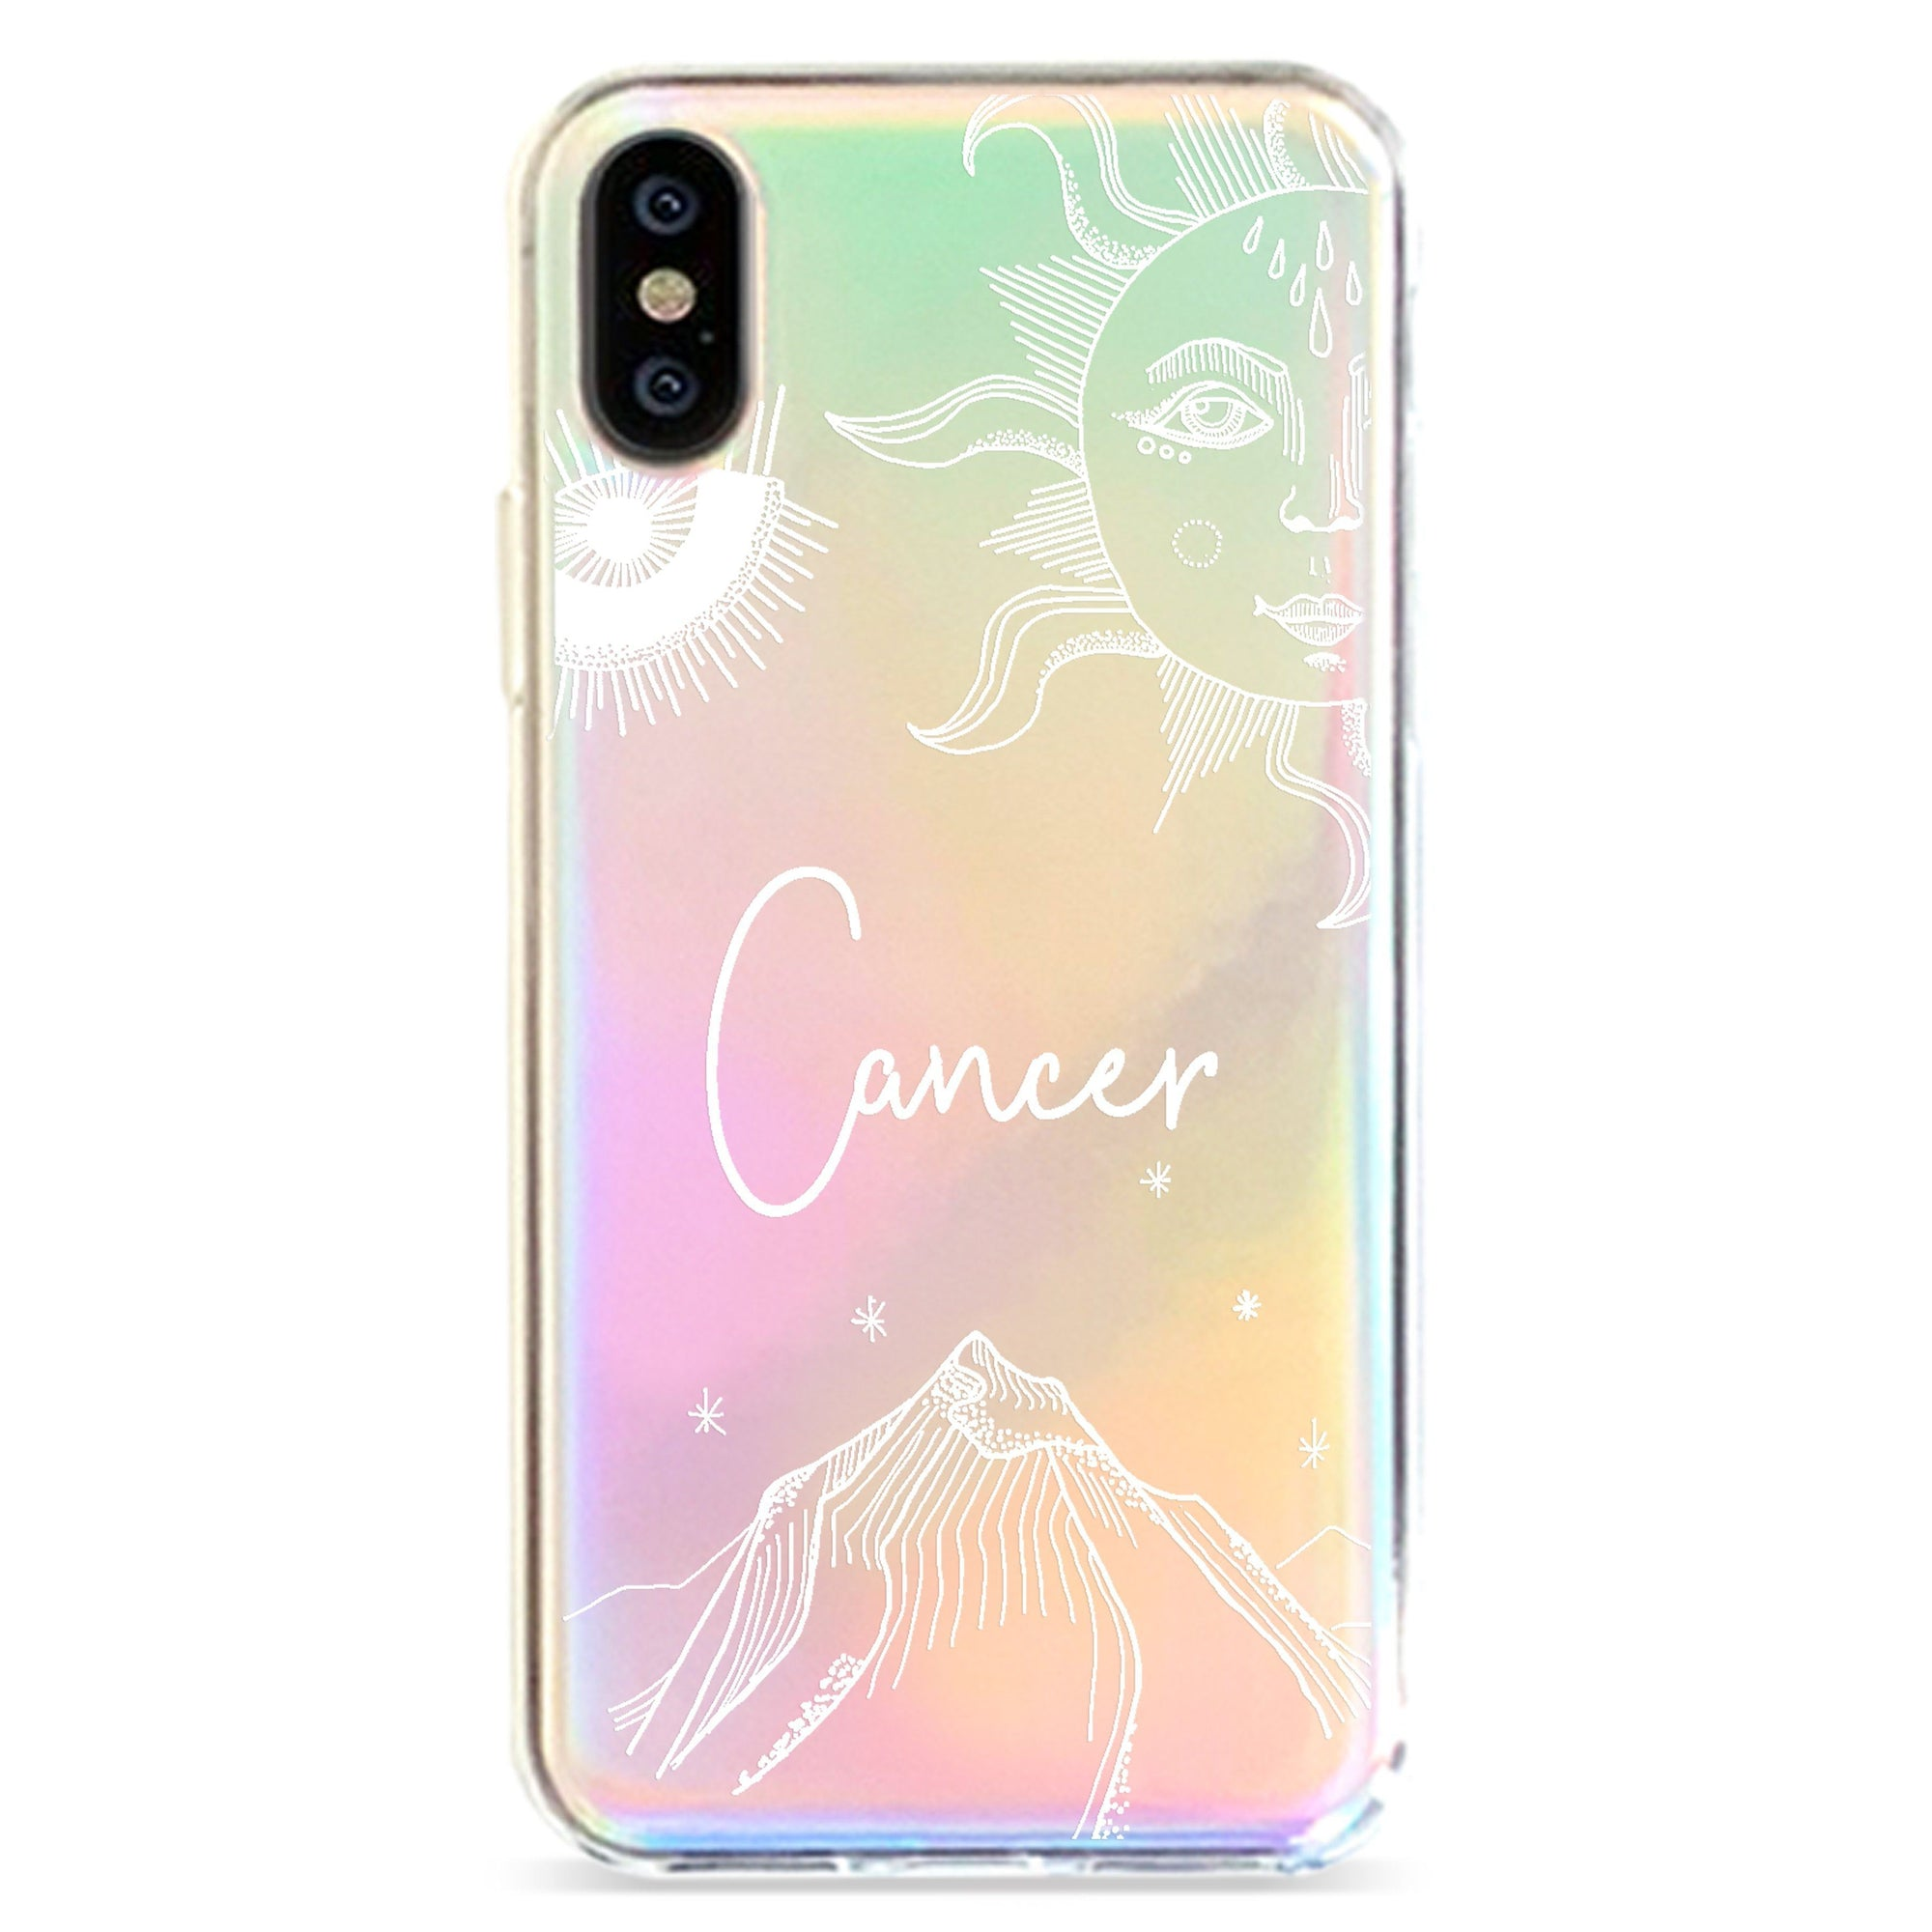 low priced 22df0 27915 Zodiac Cancer - Holographic iPhone Case - Milkyway